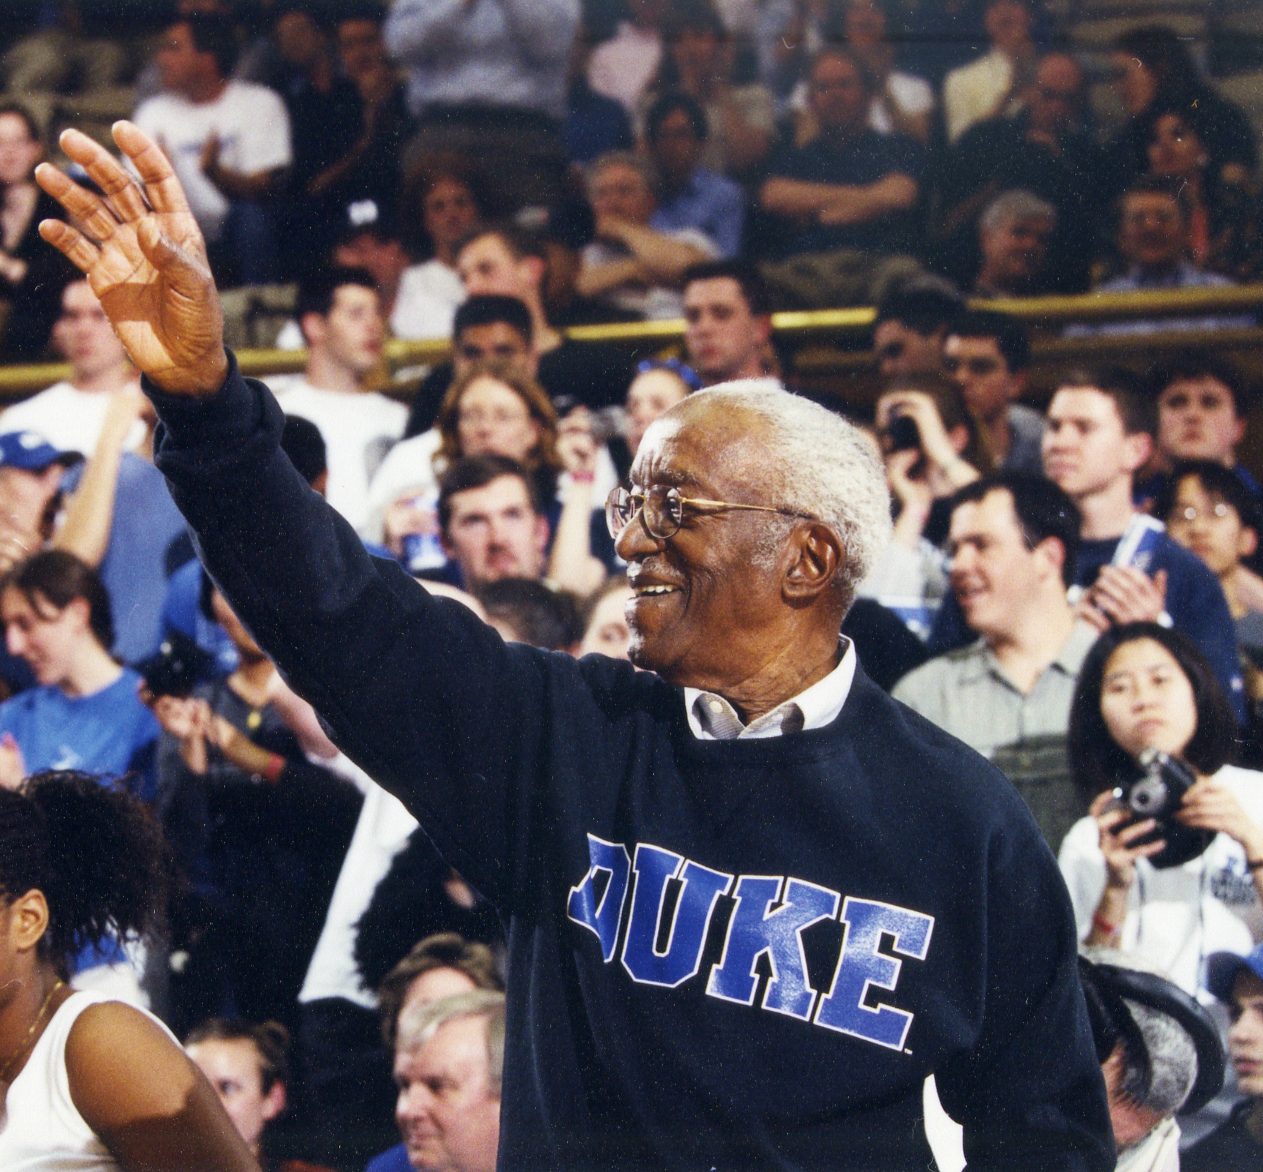 John Hope Franklin attends Duke University basketball game at Cameron Indoor Stadium, 2000